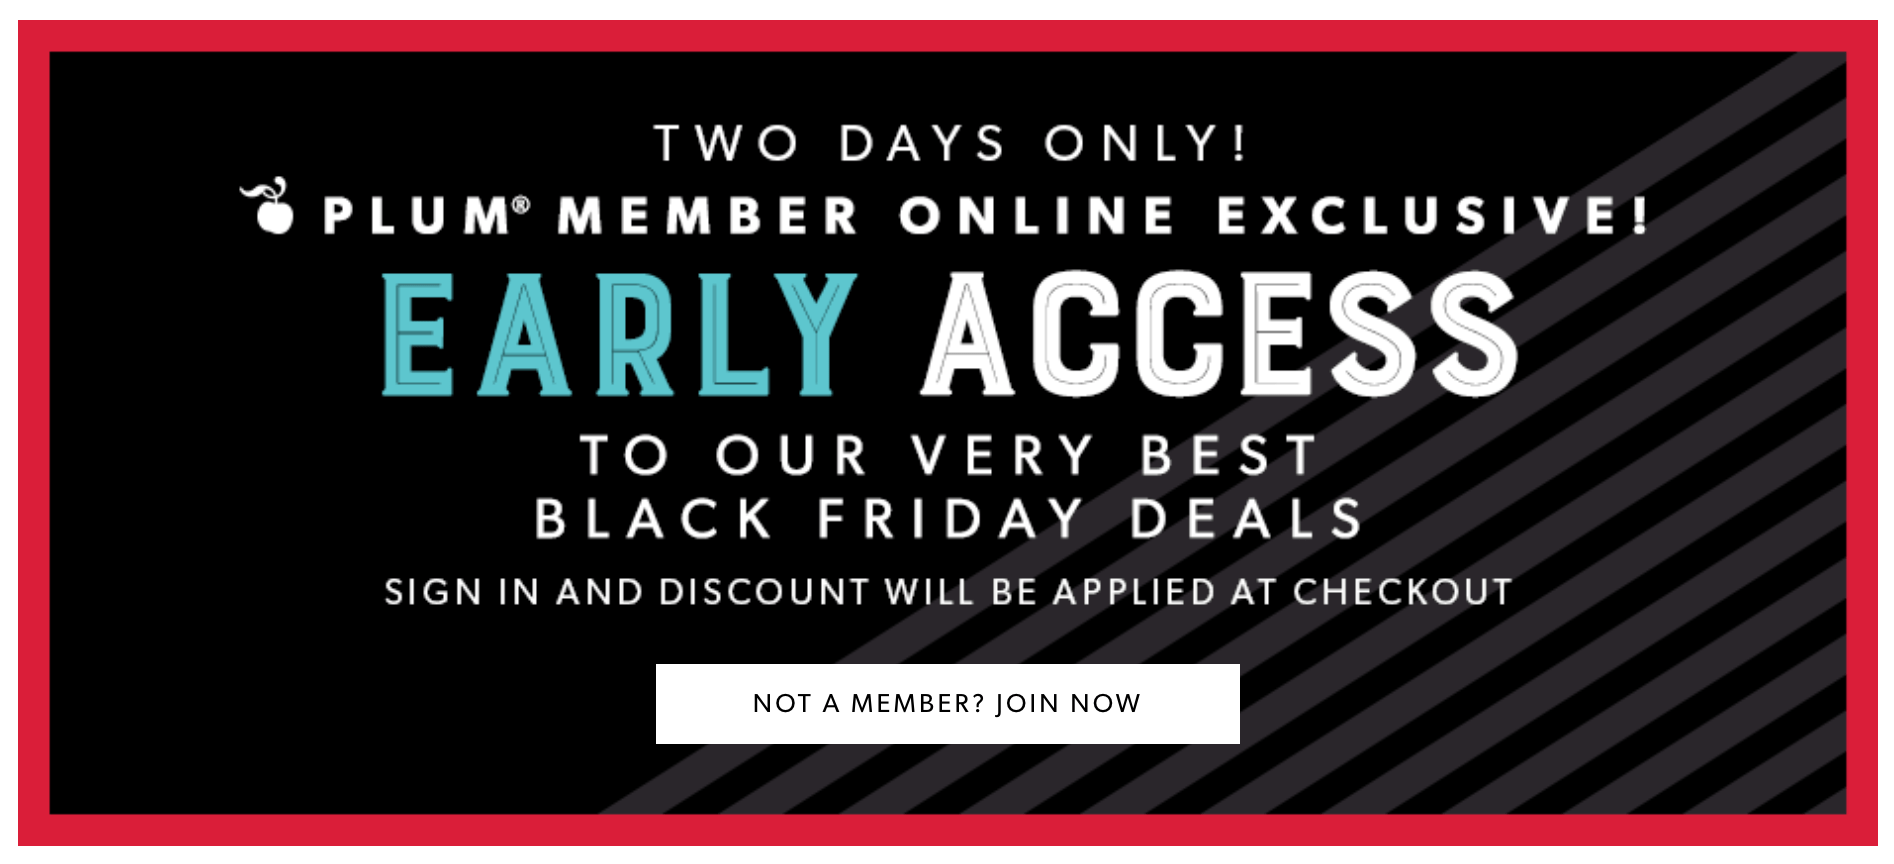 d77bd63b996 Indigo Canada Early Access to Black Friday Deals + 30% Off All Cook Books  Today Only